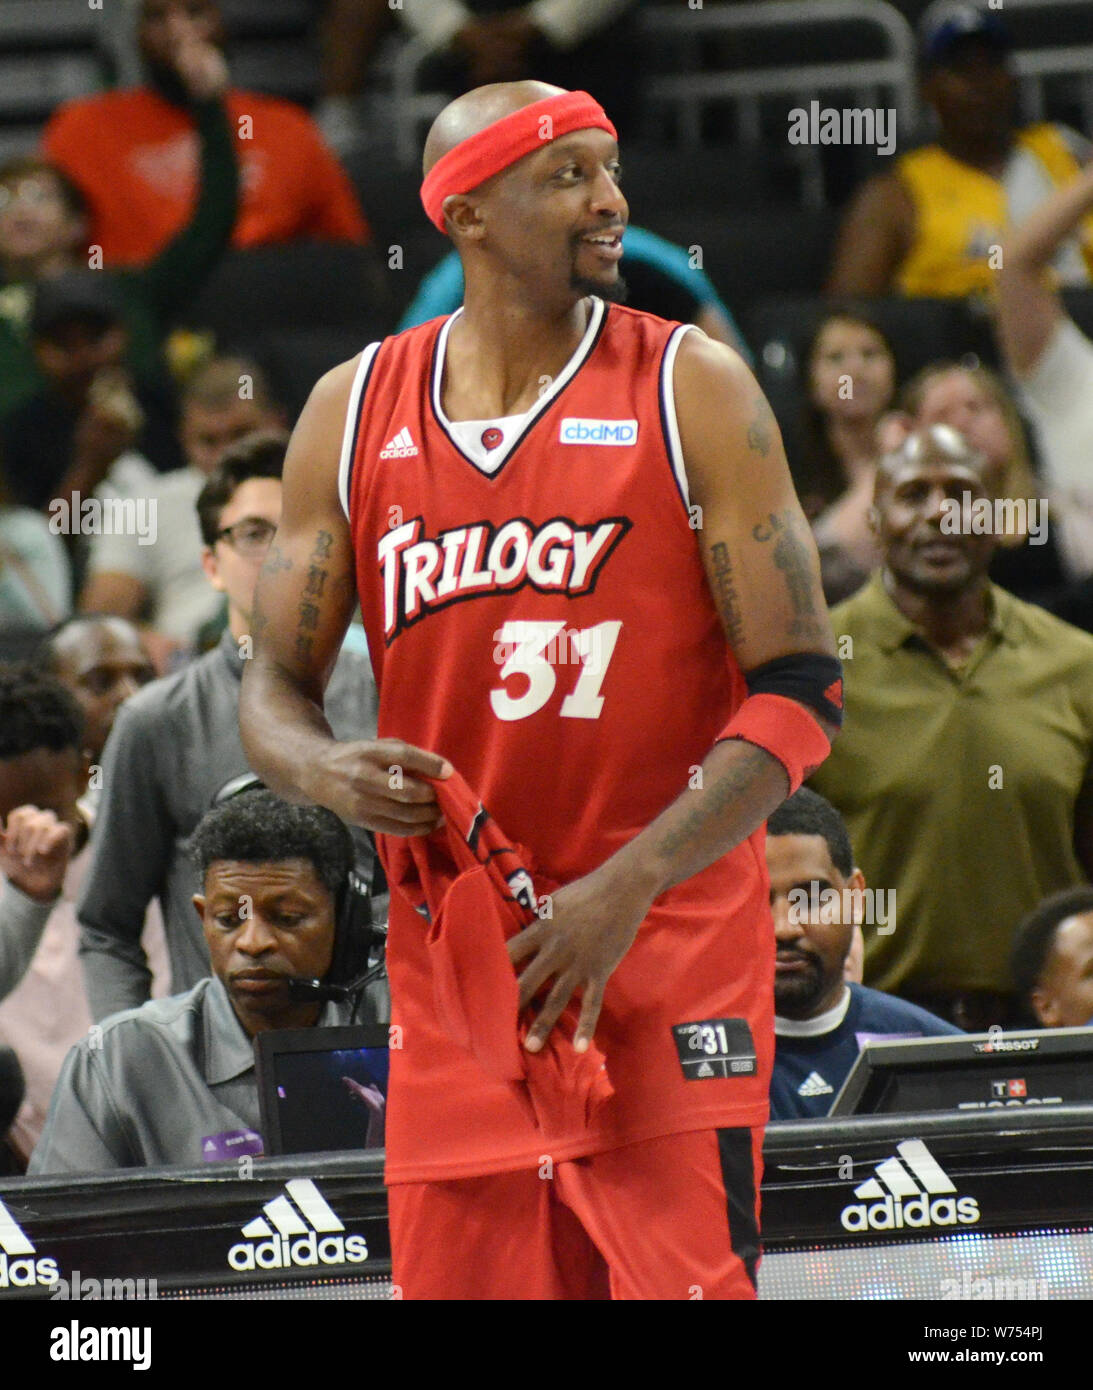 August 4, 2019: Trilogy guard Jason Terry reacts during the BIG3